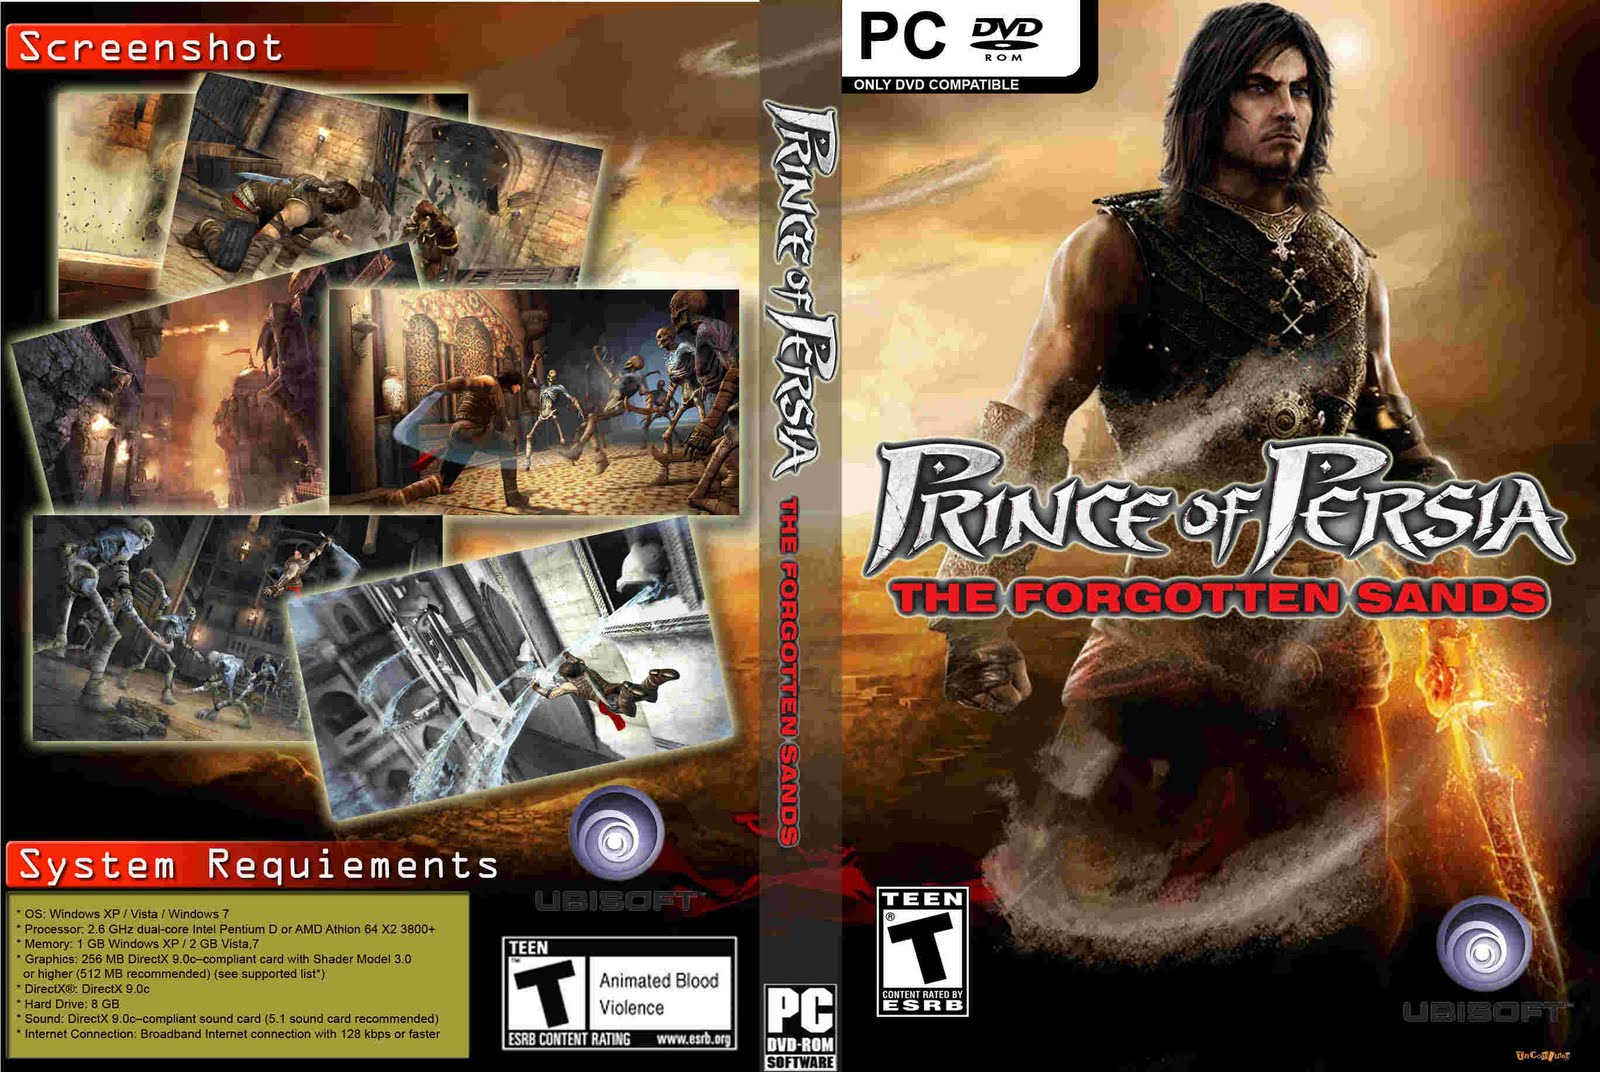 Prince of persia patch 2008 pc sexy streaming